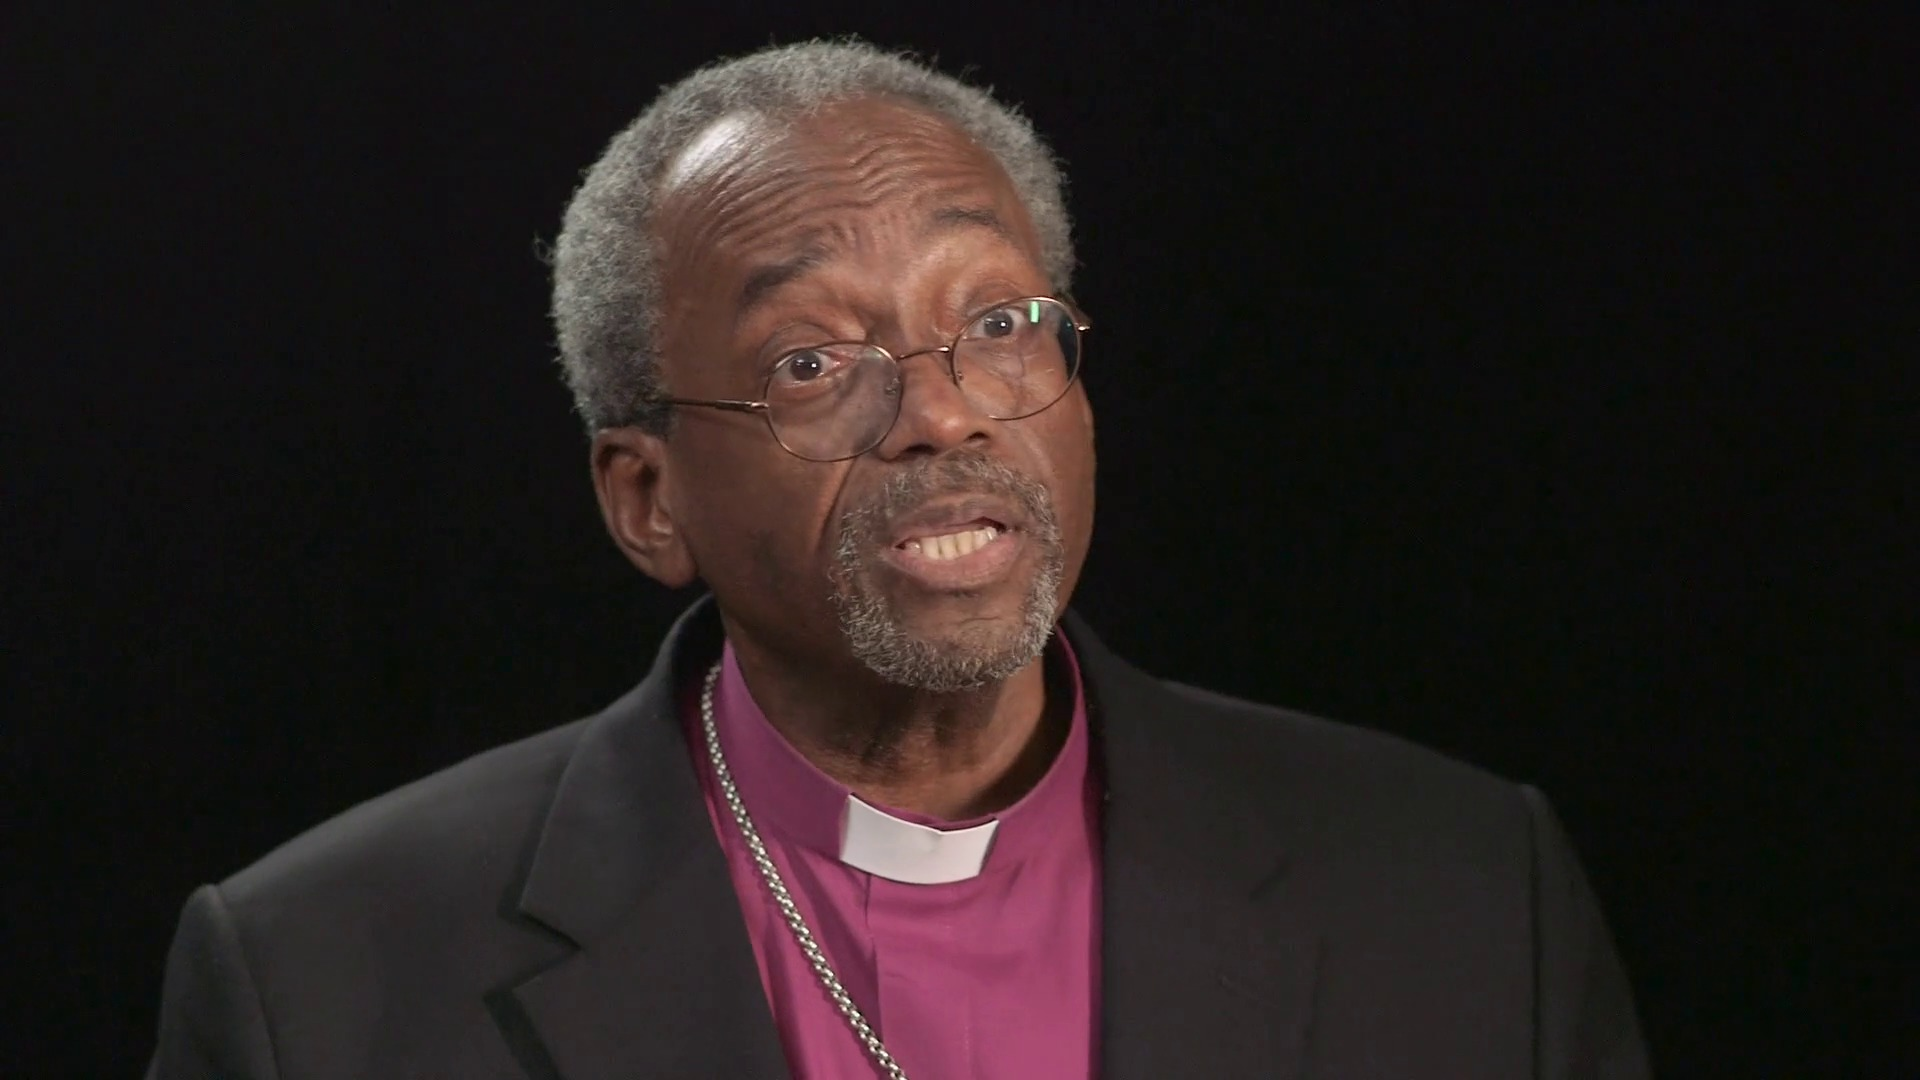 Are black priests or ministers still underrepresented in the church?